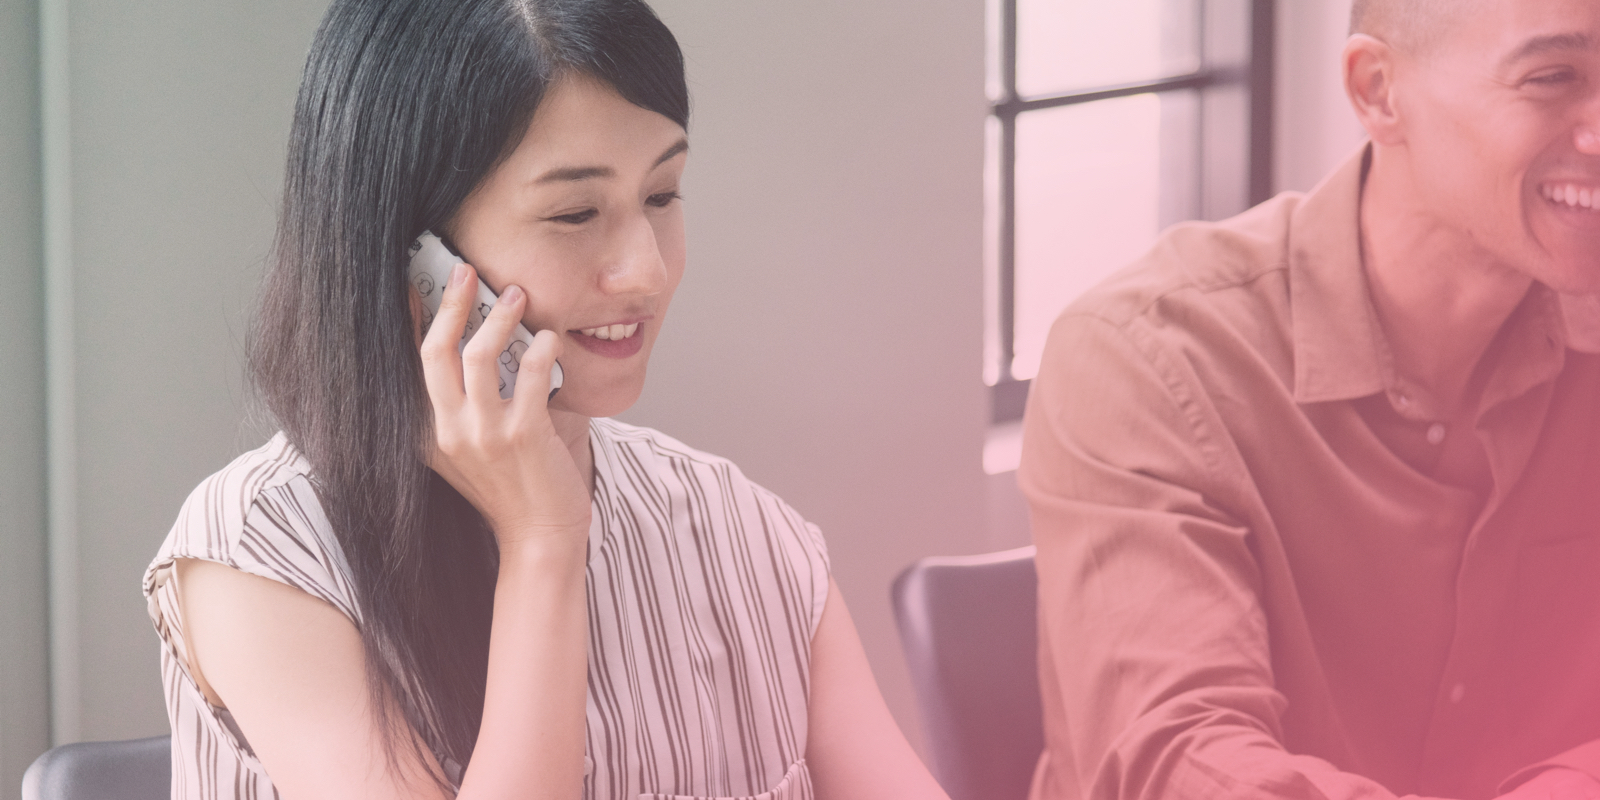 Sales Call Planning: What to Do Before Picking up the Phone